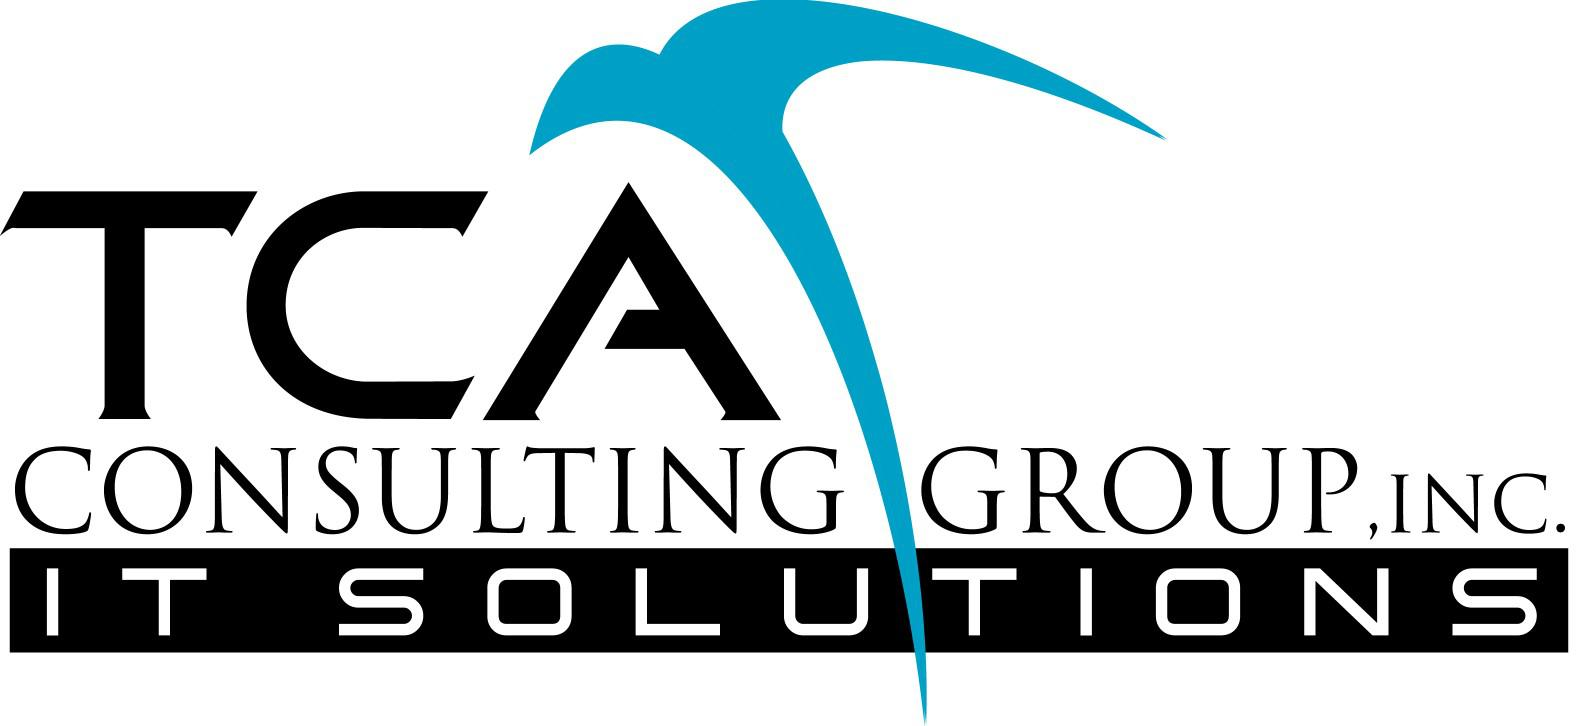 TCA Consulting Group, Inc.